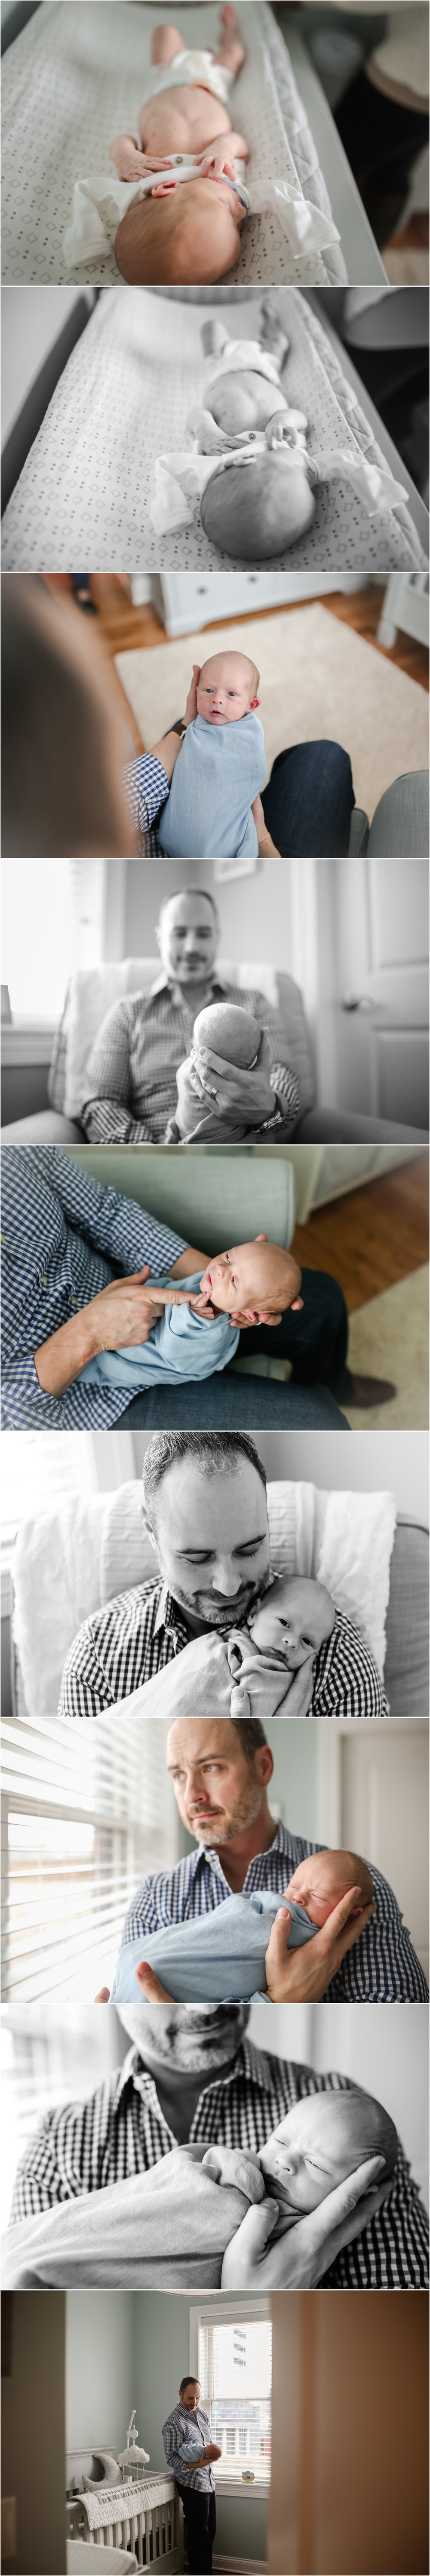 jenny grimm photography chicago newborn lifestyle family photographer